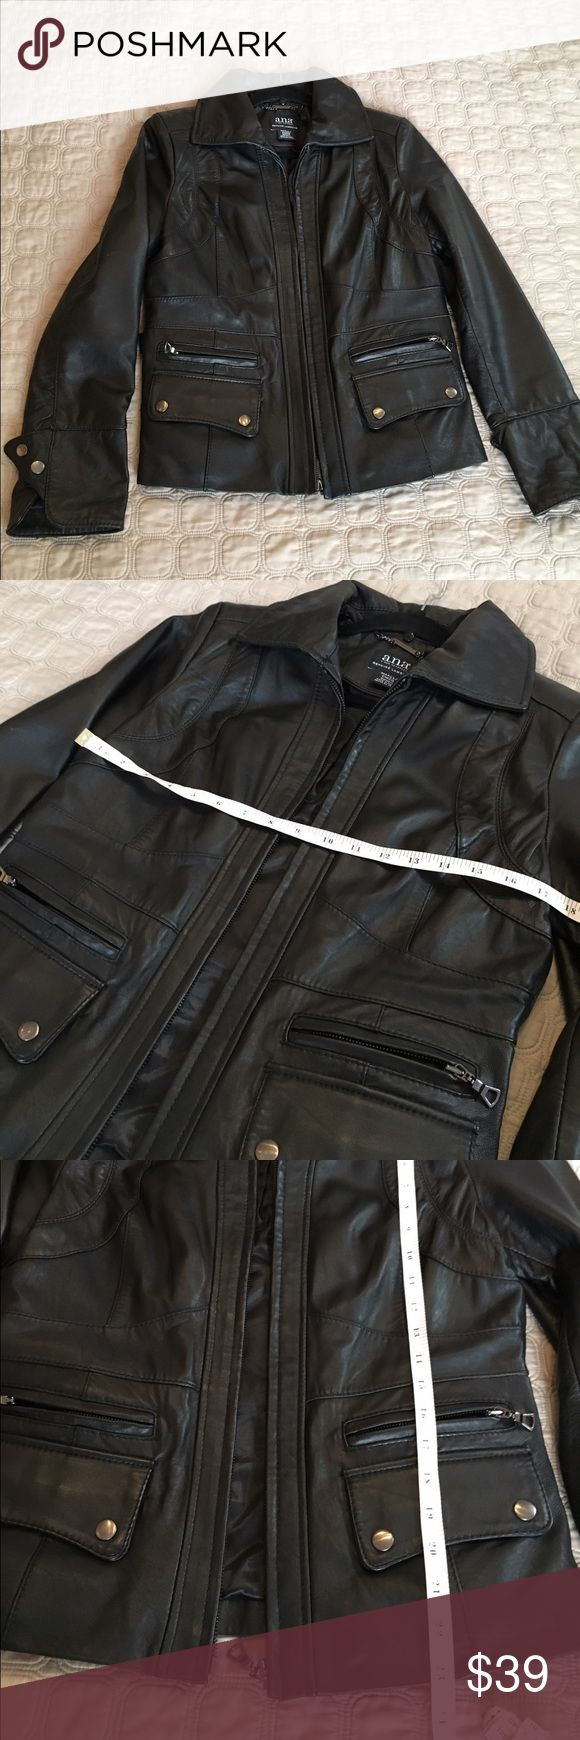 A.N.A genuine lambskin leather jacket, size S This jacket is in a perfect condition. No stains or rips or any signs of wear. Comes from a pet free, smoke free home. Made from 100% genuine leather! a.n.a Jackets & Coats